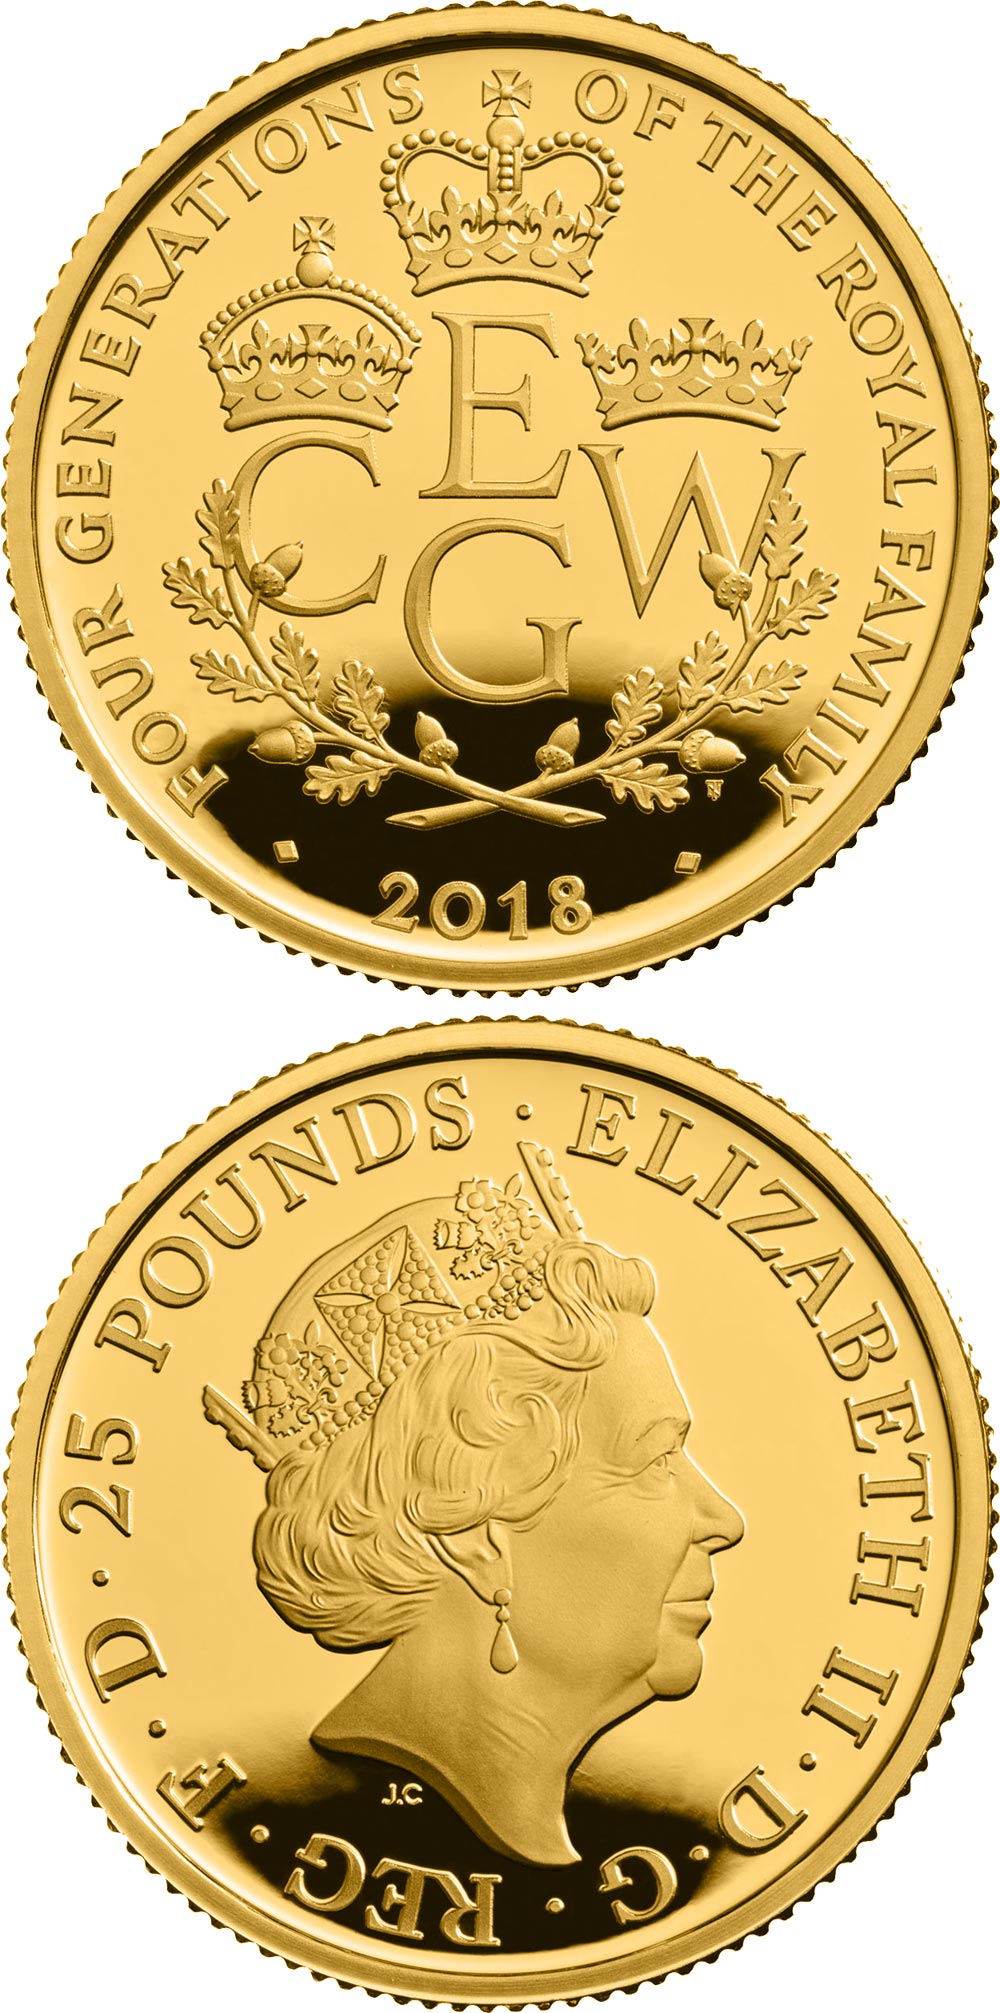 Image of 25 pounds coin - The Four Generations of Royalty | United Kingdom 2018.  The Gold coin is of Proof quality.